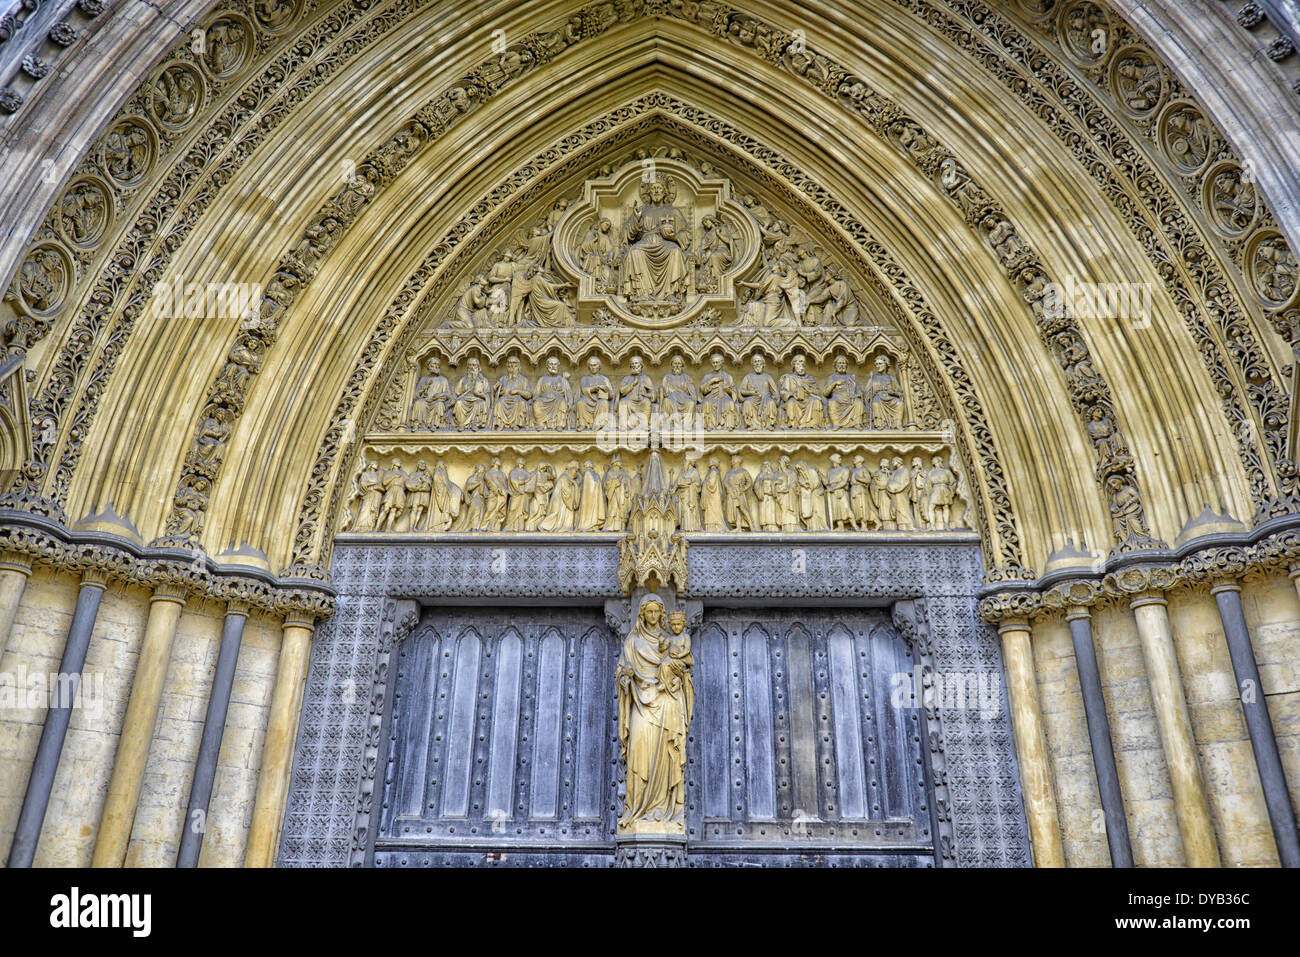 Image of Westminster Abbey North Entrance, London, UK - Stock Image